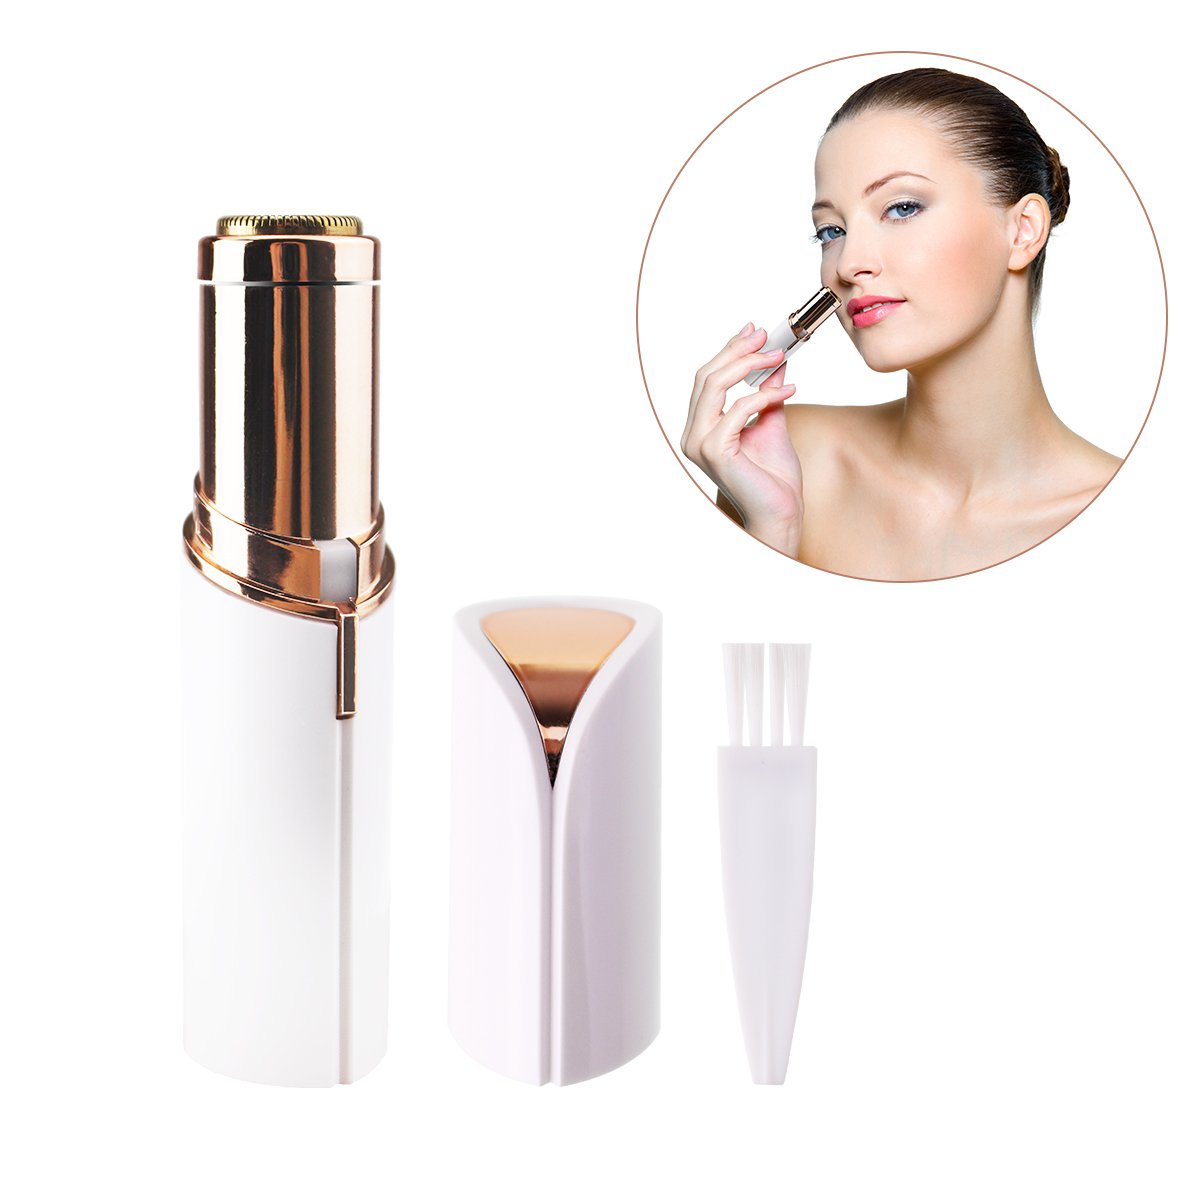 Painless Hair Remover for Women Face Lip Chin Cheeks Sideburns, Jelaty Portable Mini Electric Shaver Facial Hair removal with LED Light, 1 AA Battery Included